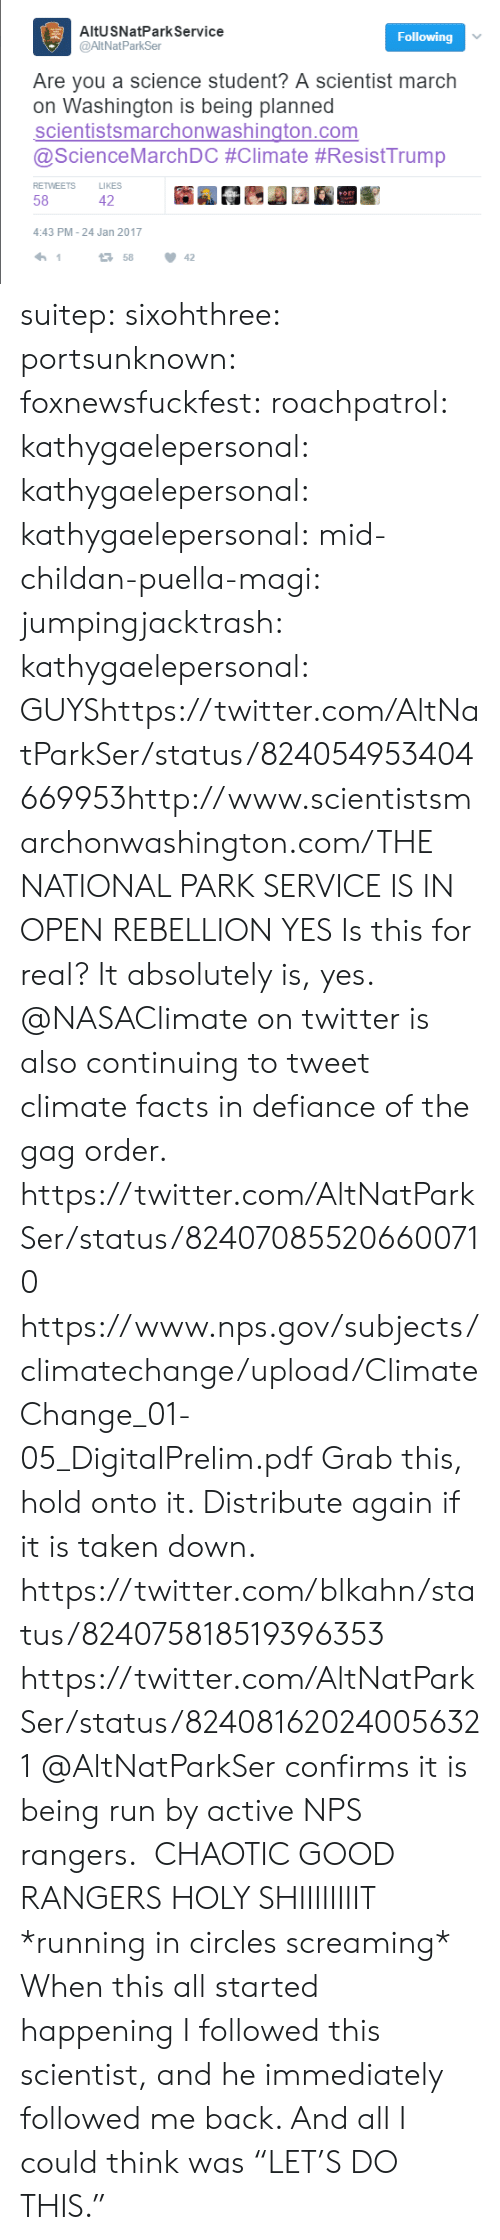 "Climatechange: AltUSNatPark Service  @AltNatParkSer  Following  Are you a science student? A scientist march  on Washington is being planned  scientistsmarchonwashington.com  @ScienceMarchDC #Climate #ResistTrump  RETWEETS  LIKES  58  42  4:43 PM-24 Jan 2017  1  158  42 suitep: sixohthree:  portsunknown:  foxnewsfuckfest:  roachpatrol:   kathygaelepersonal:  kathygaelepersonal:  kathygaelepersonal:  mid-childan-puella-magi:  jumpingjacktrash:  kathygaelepersonal:   GUYShttps://twitter.com/AltNatParkSer/status/824054953404669953http://www.scientistsmarchonwashington.com/THE NATIONAL PARK SERVICE IS IN OPEN REBELLION   YES  Is this for real?  It absolutely is, yes. @NASAClimate on twitter is also continuing to tweet climate facts in defiance of the gag order.  https://twitter.com/AltNatParkSer/status/824070855206600710  https://www.nps.gov/subjects/climatechange/upload/ClimateChange_01-05_DigitalPrelim.pdf Grab this, hold onto it. Distribute again if it is taken down.  https://twitter.com/blkahn/status/824075818519396353  https://twitter.com/AltNatParkSer/status/824081620240056321 @AltNatParkSer confirms it is being run by active NPS rangers.   CHAOTIC GOOD RANGERS   HOLY SHIIIIIIIIT  *running in circles screaming*   When this all started happening I followed this scientist, and he immediately followed me back. And all I could think was ""LET'S DO THIS."""